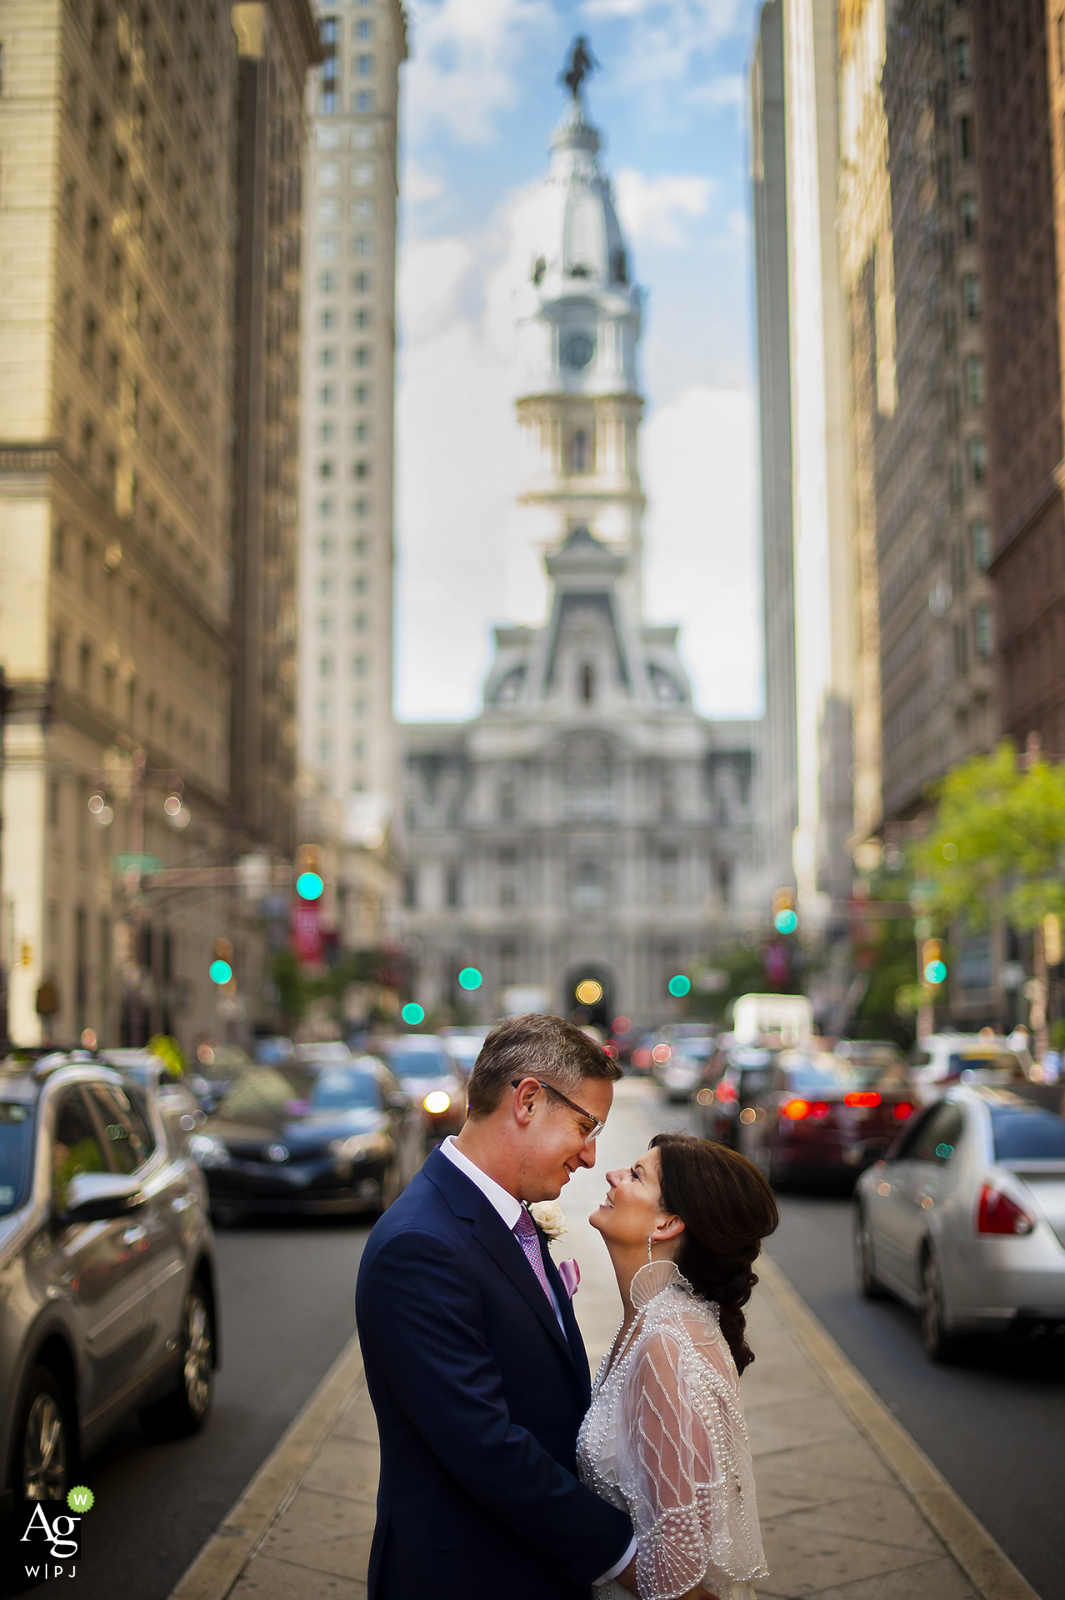 Broad Street - Philadelphia, PA wedding photography | A bride and groom embrace each other along Broad Street in Center City.